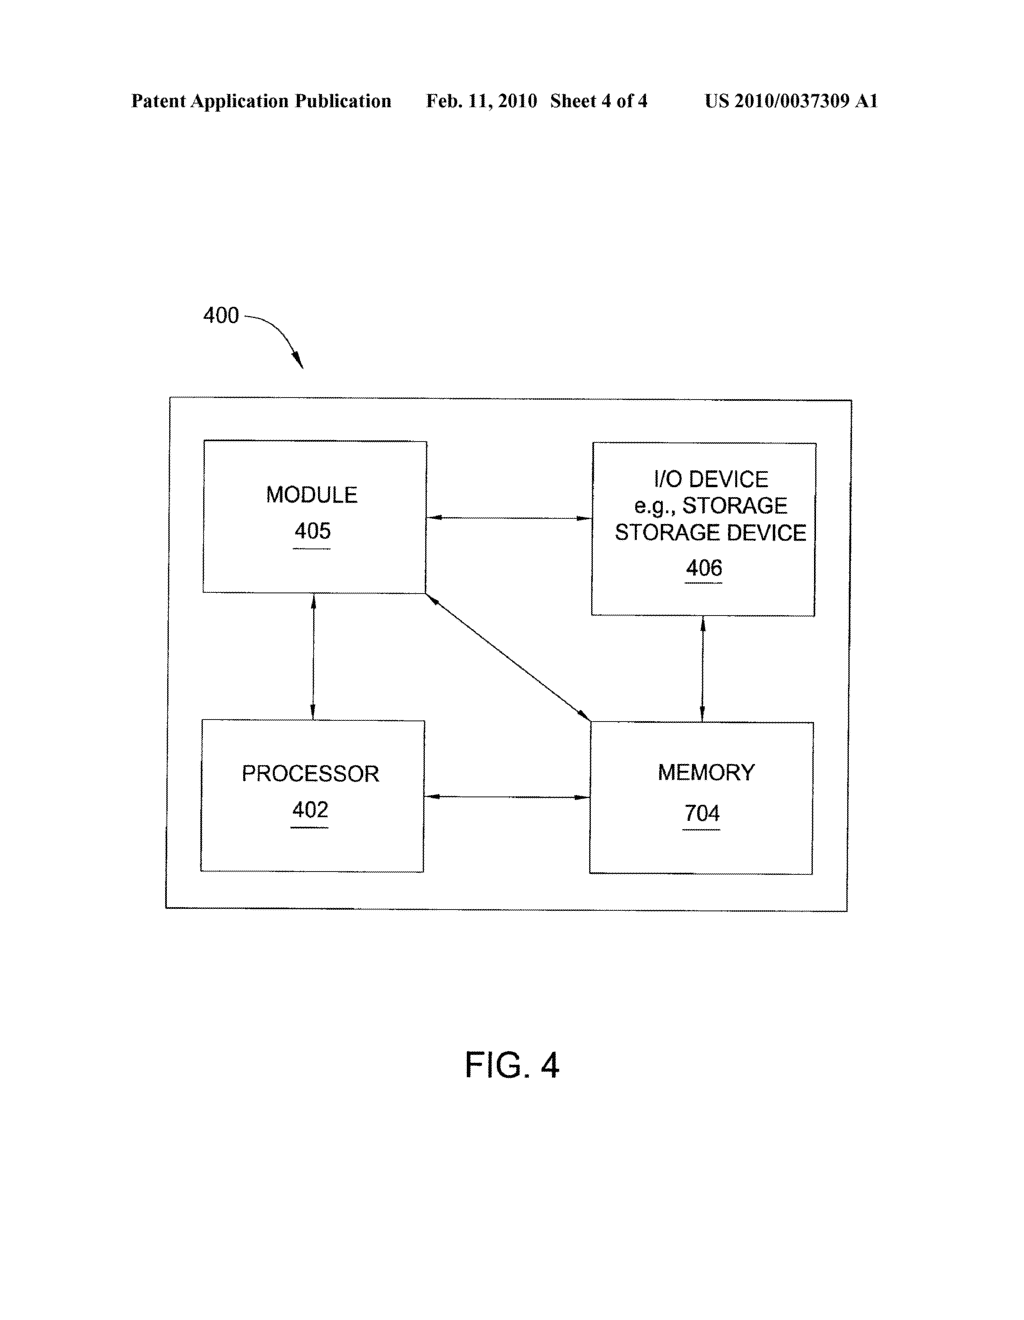 METHOD AND APPARATUS FOR PROVIDING SECURITY IN AN INTRANET NETWORK